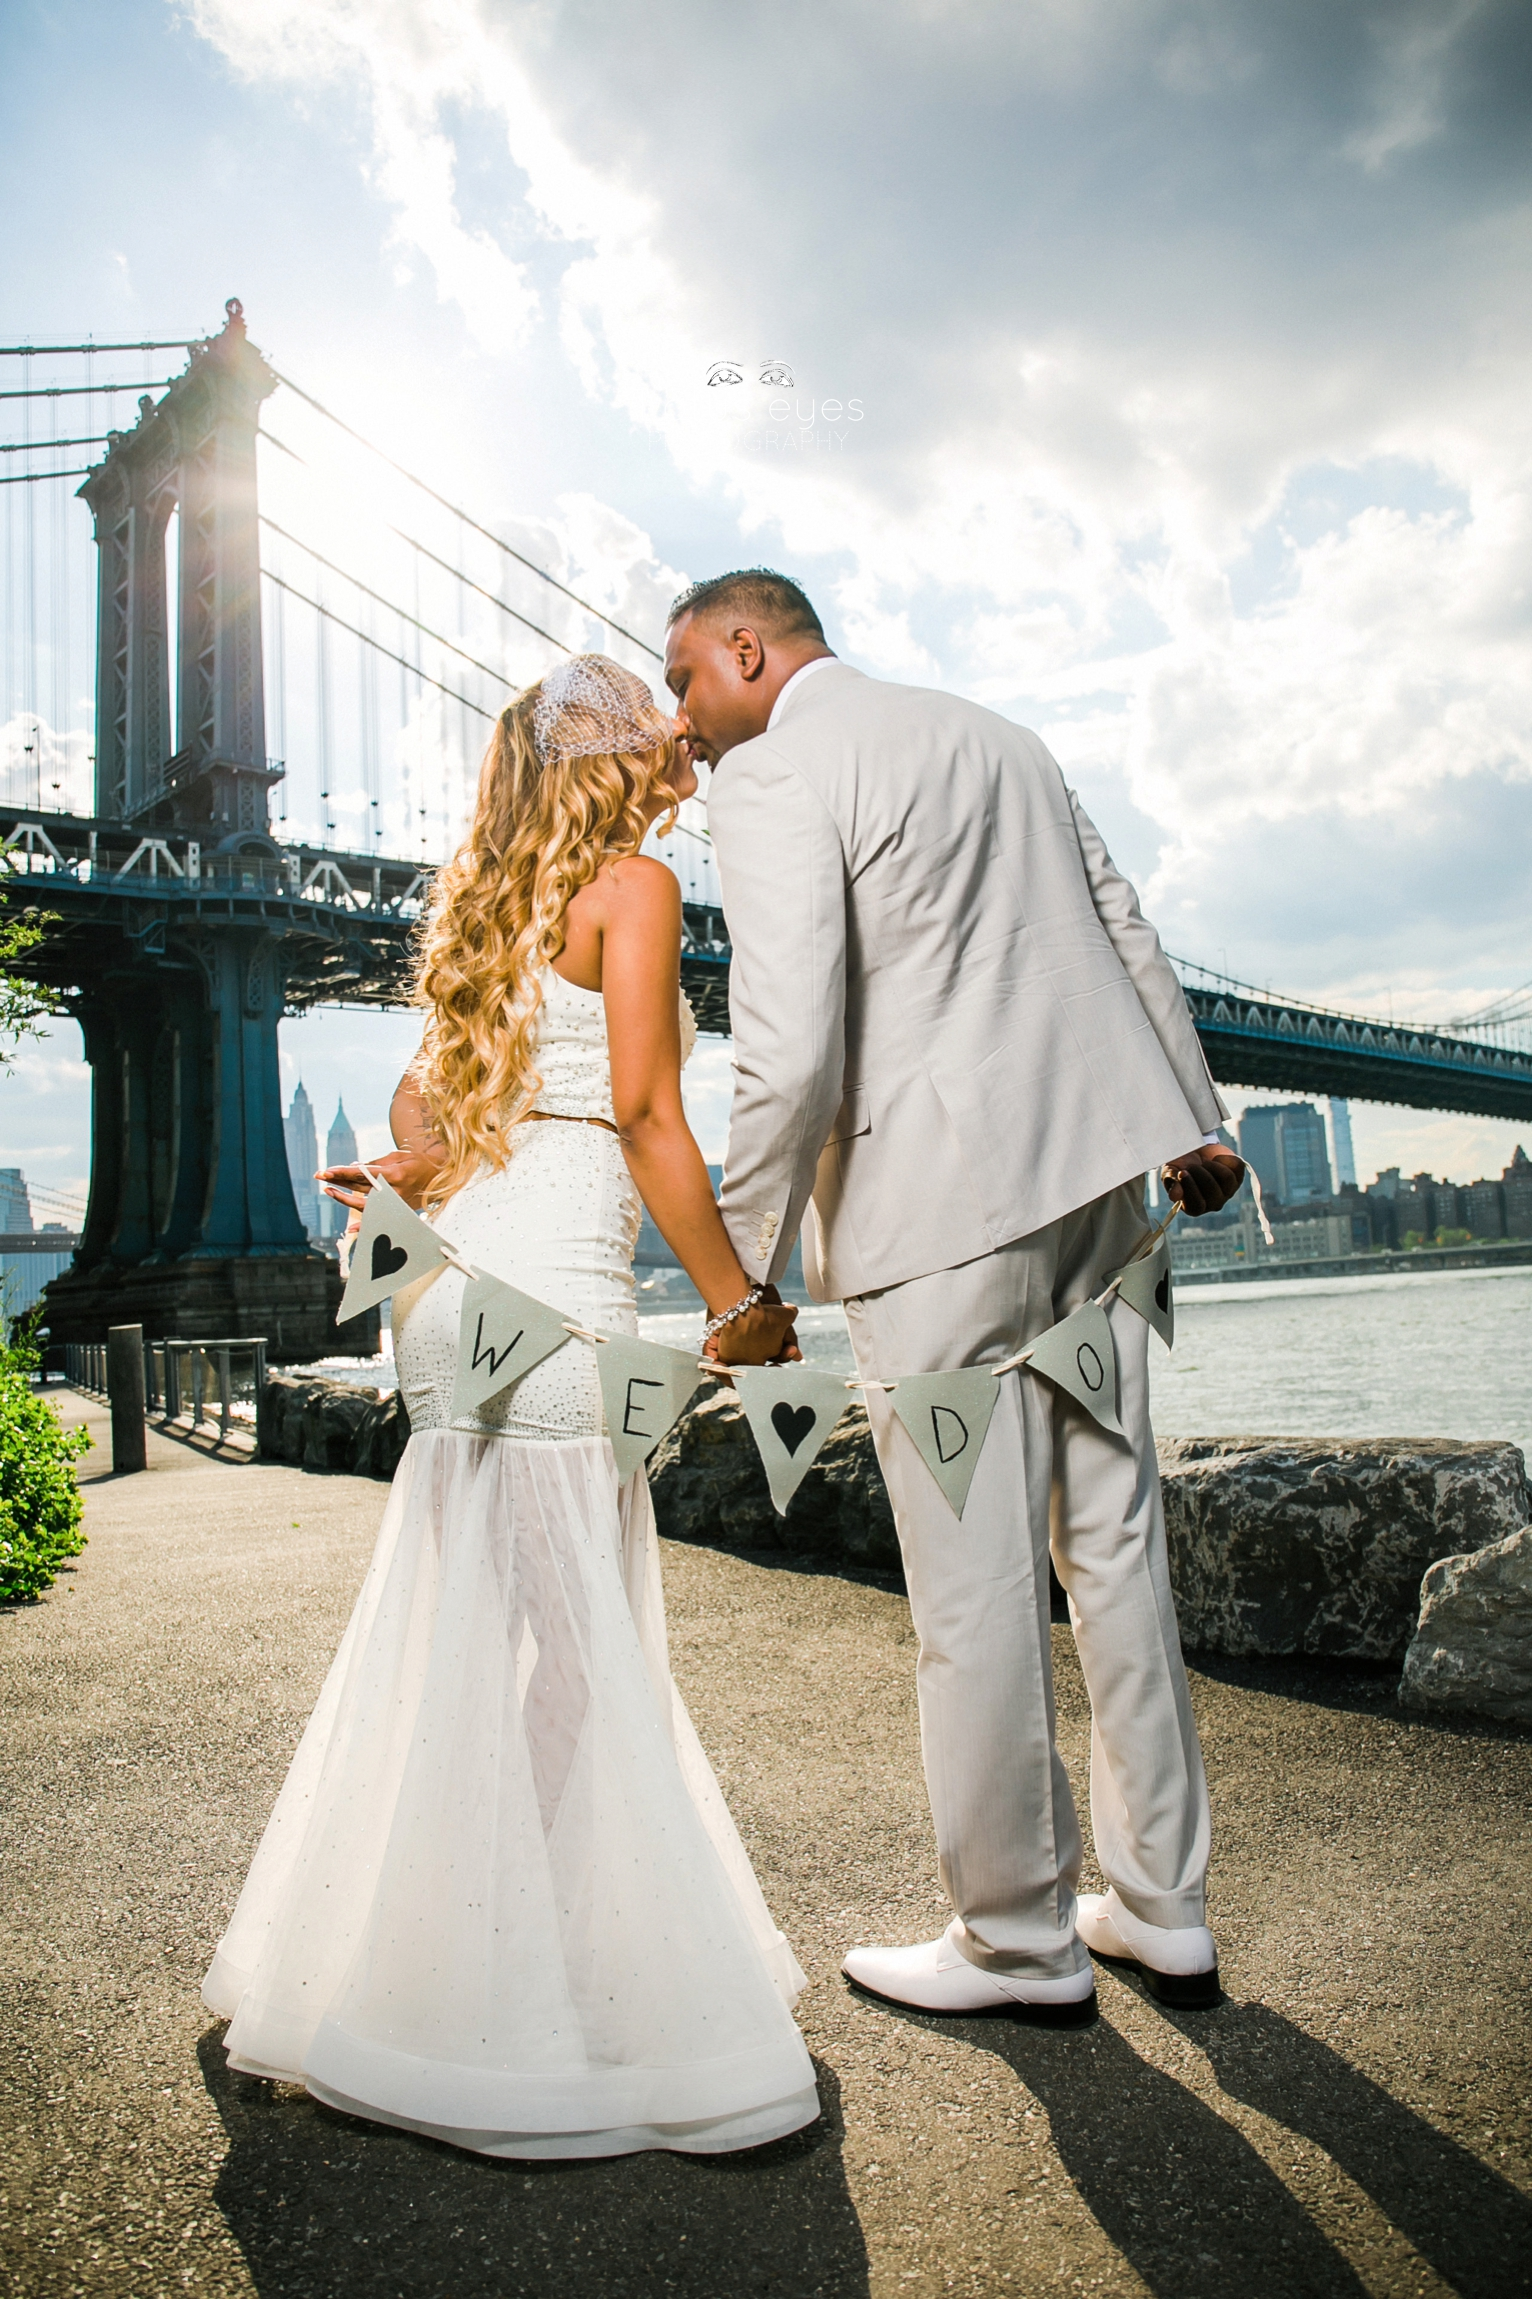 Wedding Photography Portraits in New York City